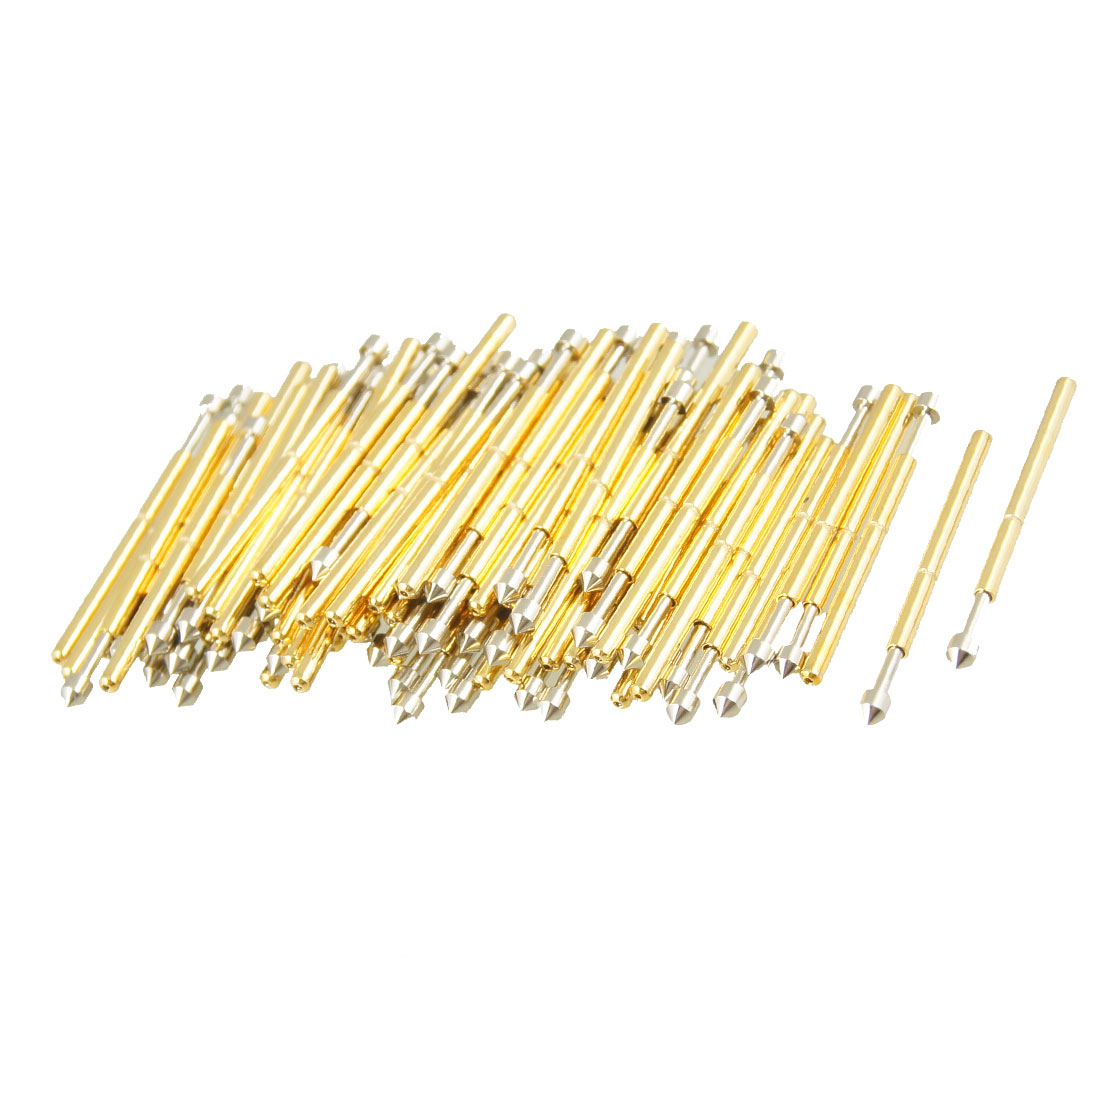 100 Pcs 975E 1.3mm 90 Degree Convex Tip Diameter Spring Test Probes Pins